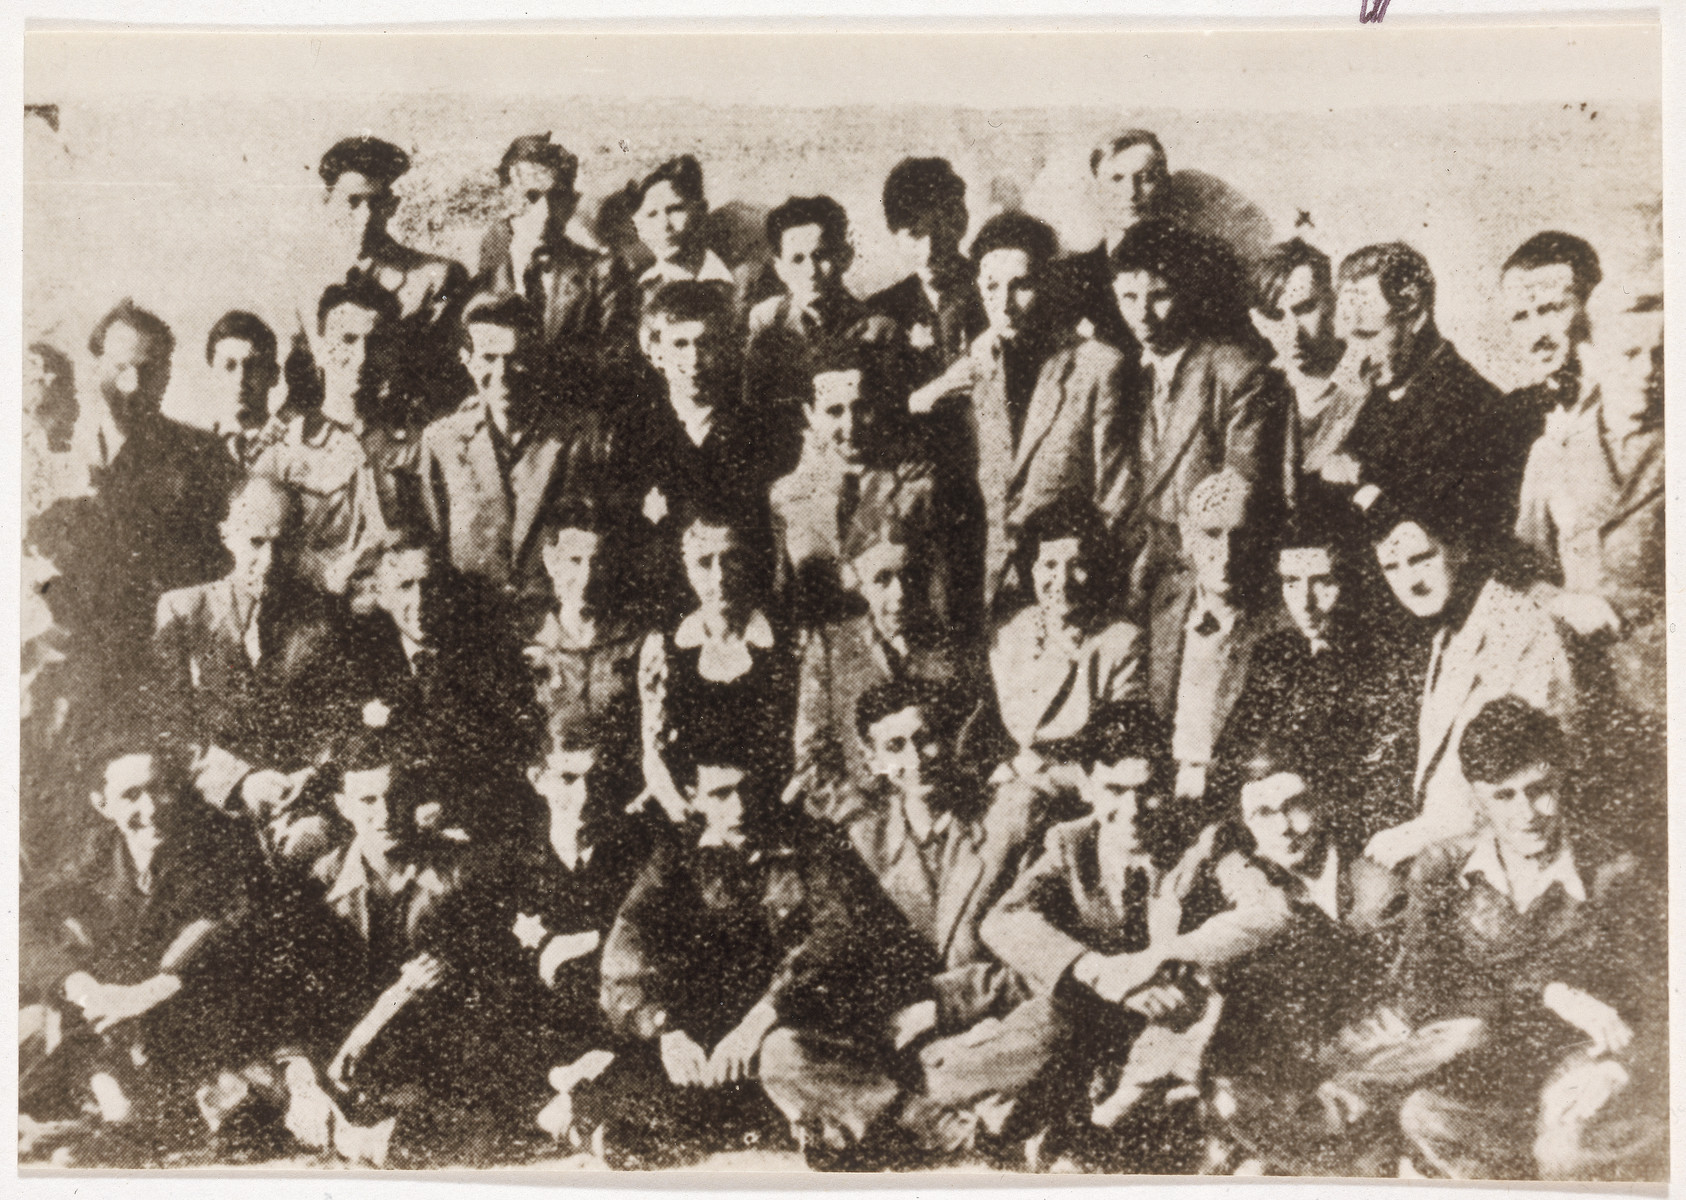 Group portrait of teenage boys [perhaps a school class] in the Lodz ghetto.   In rear right of the photograph, fourth from the right and under the x is David Sierakowiak.